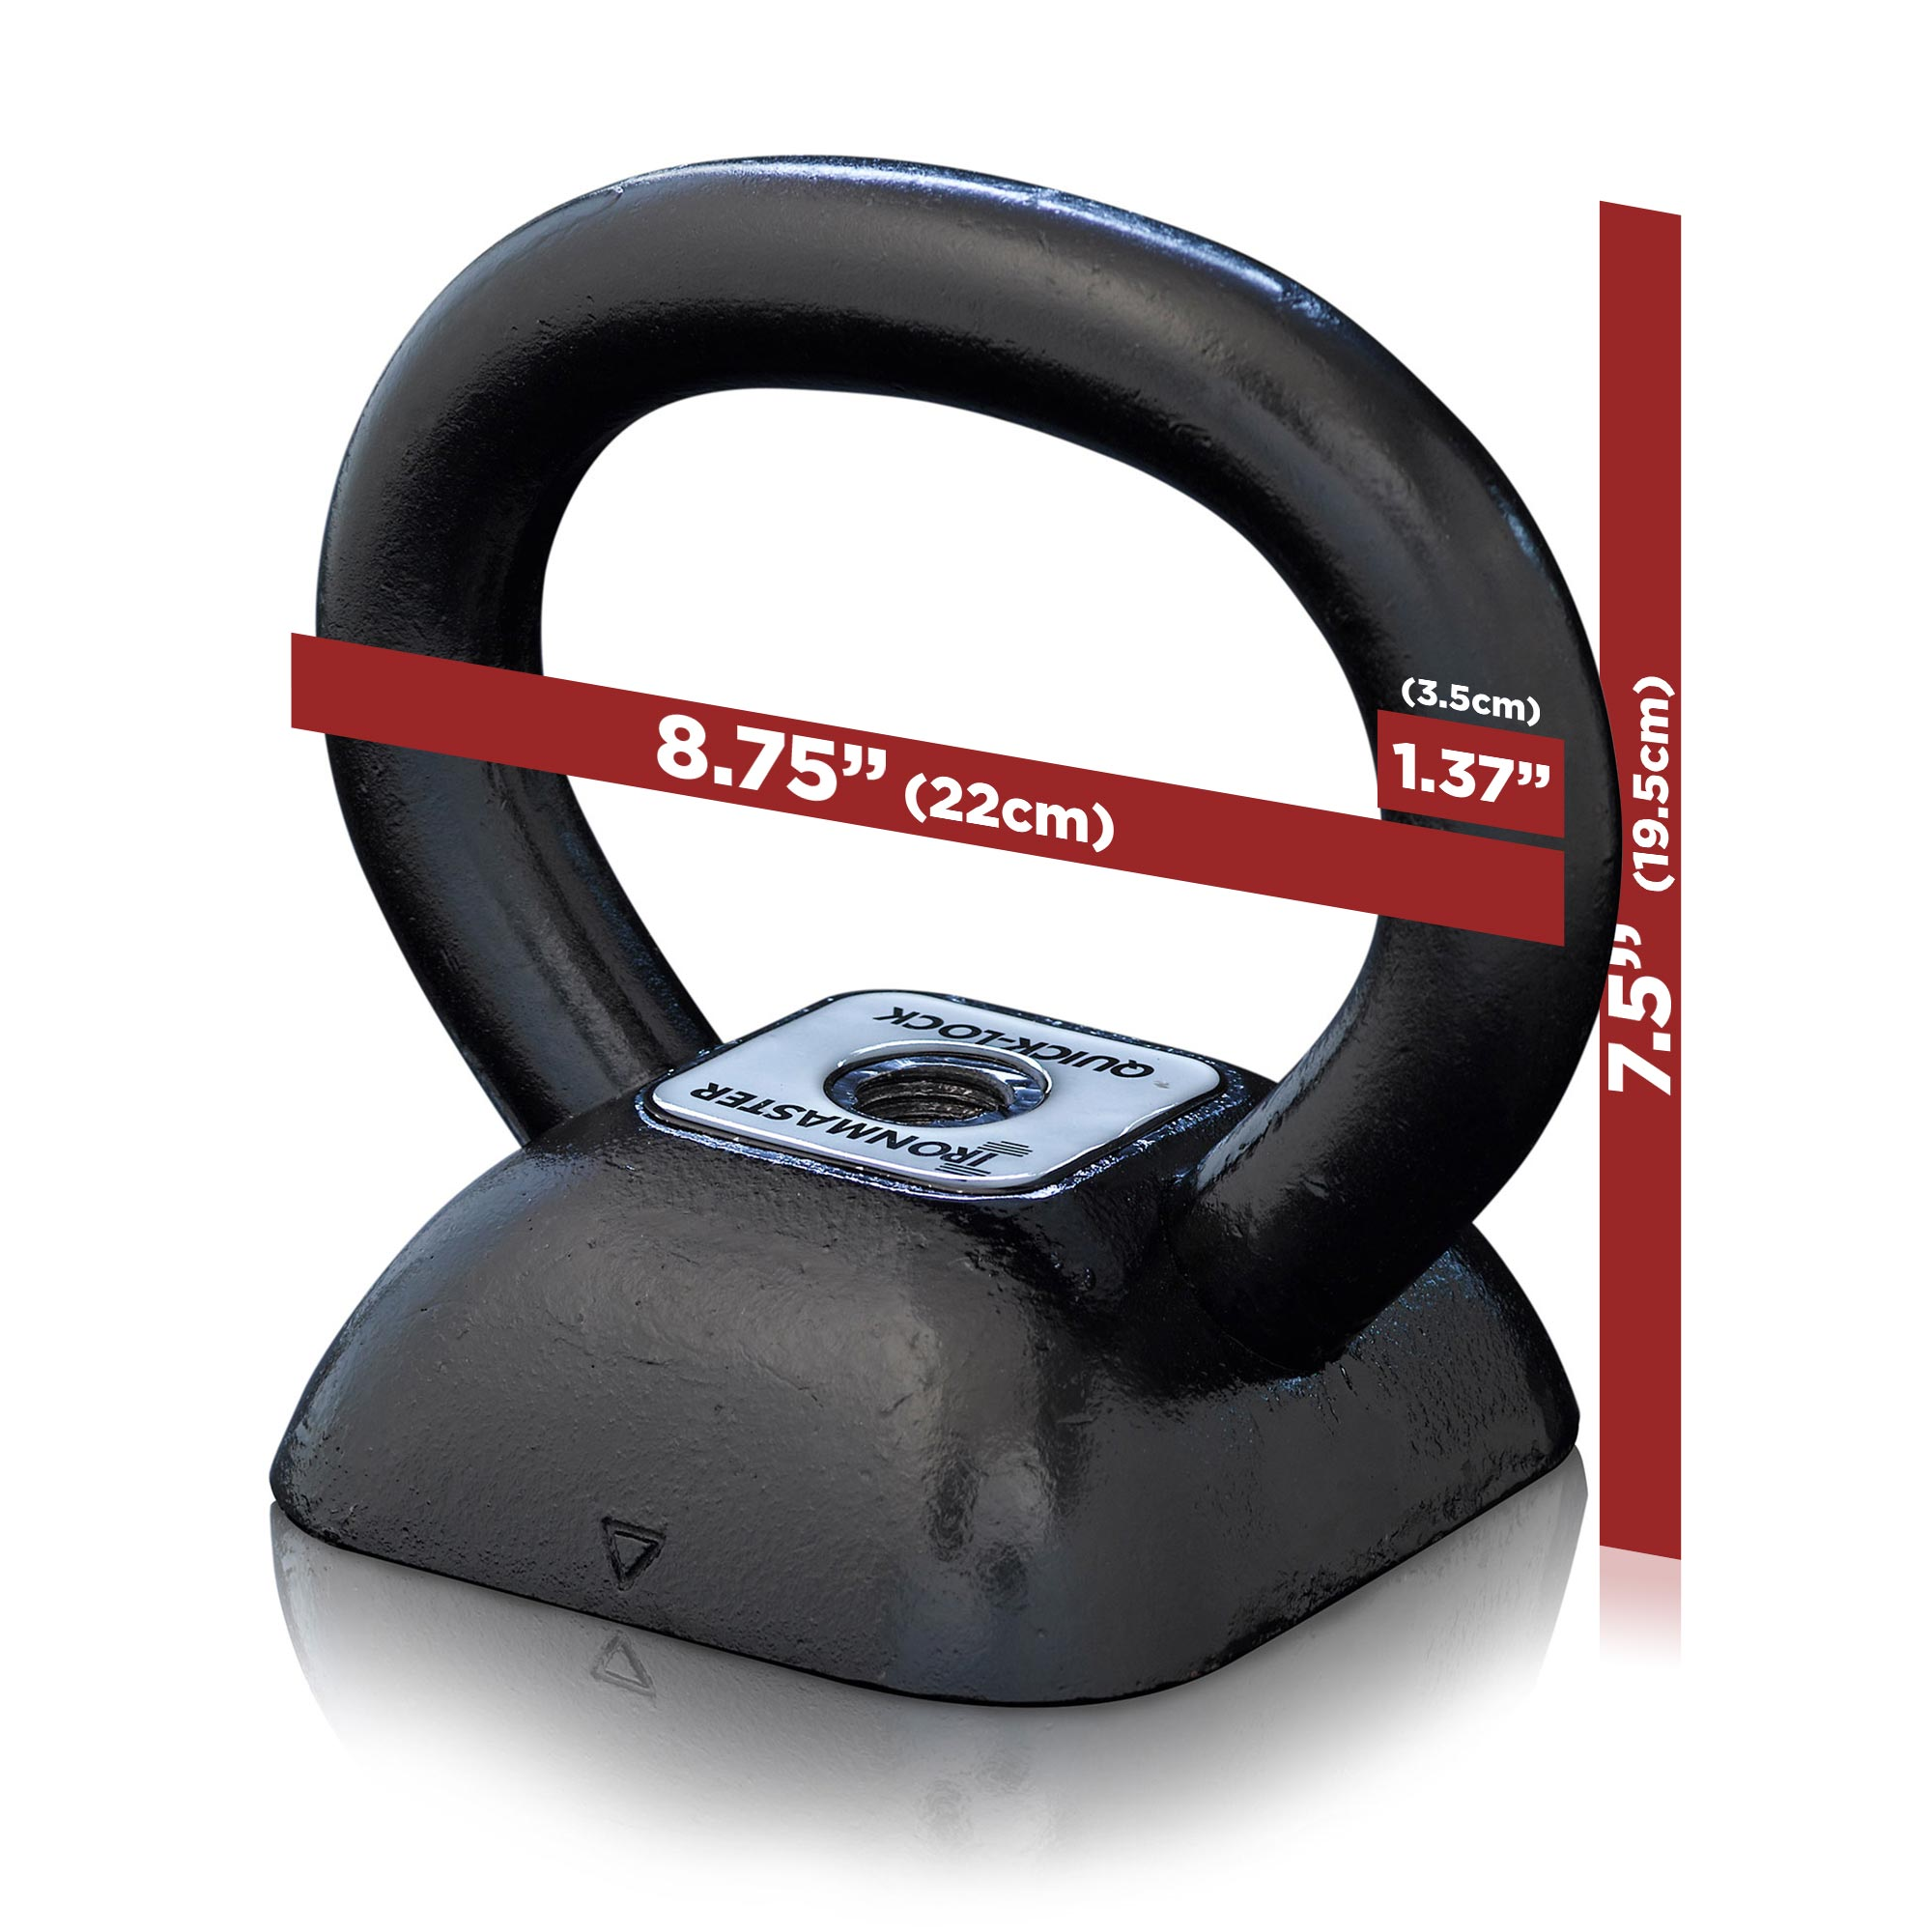 IronmasterUK Adjustable Kettlebell Specifications